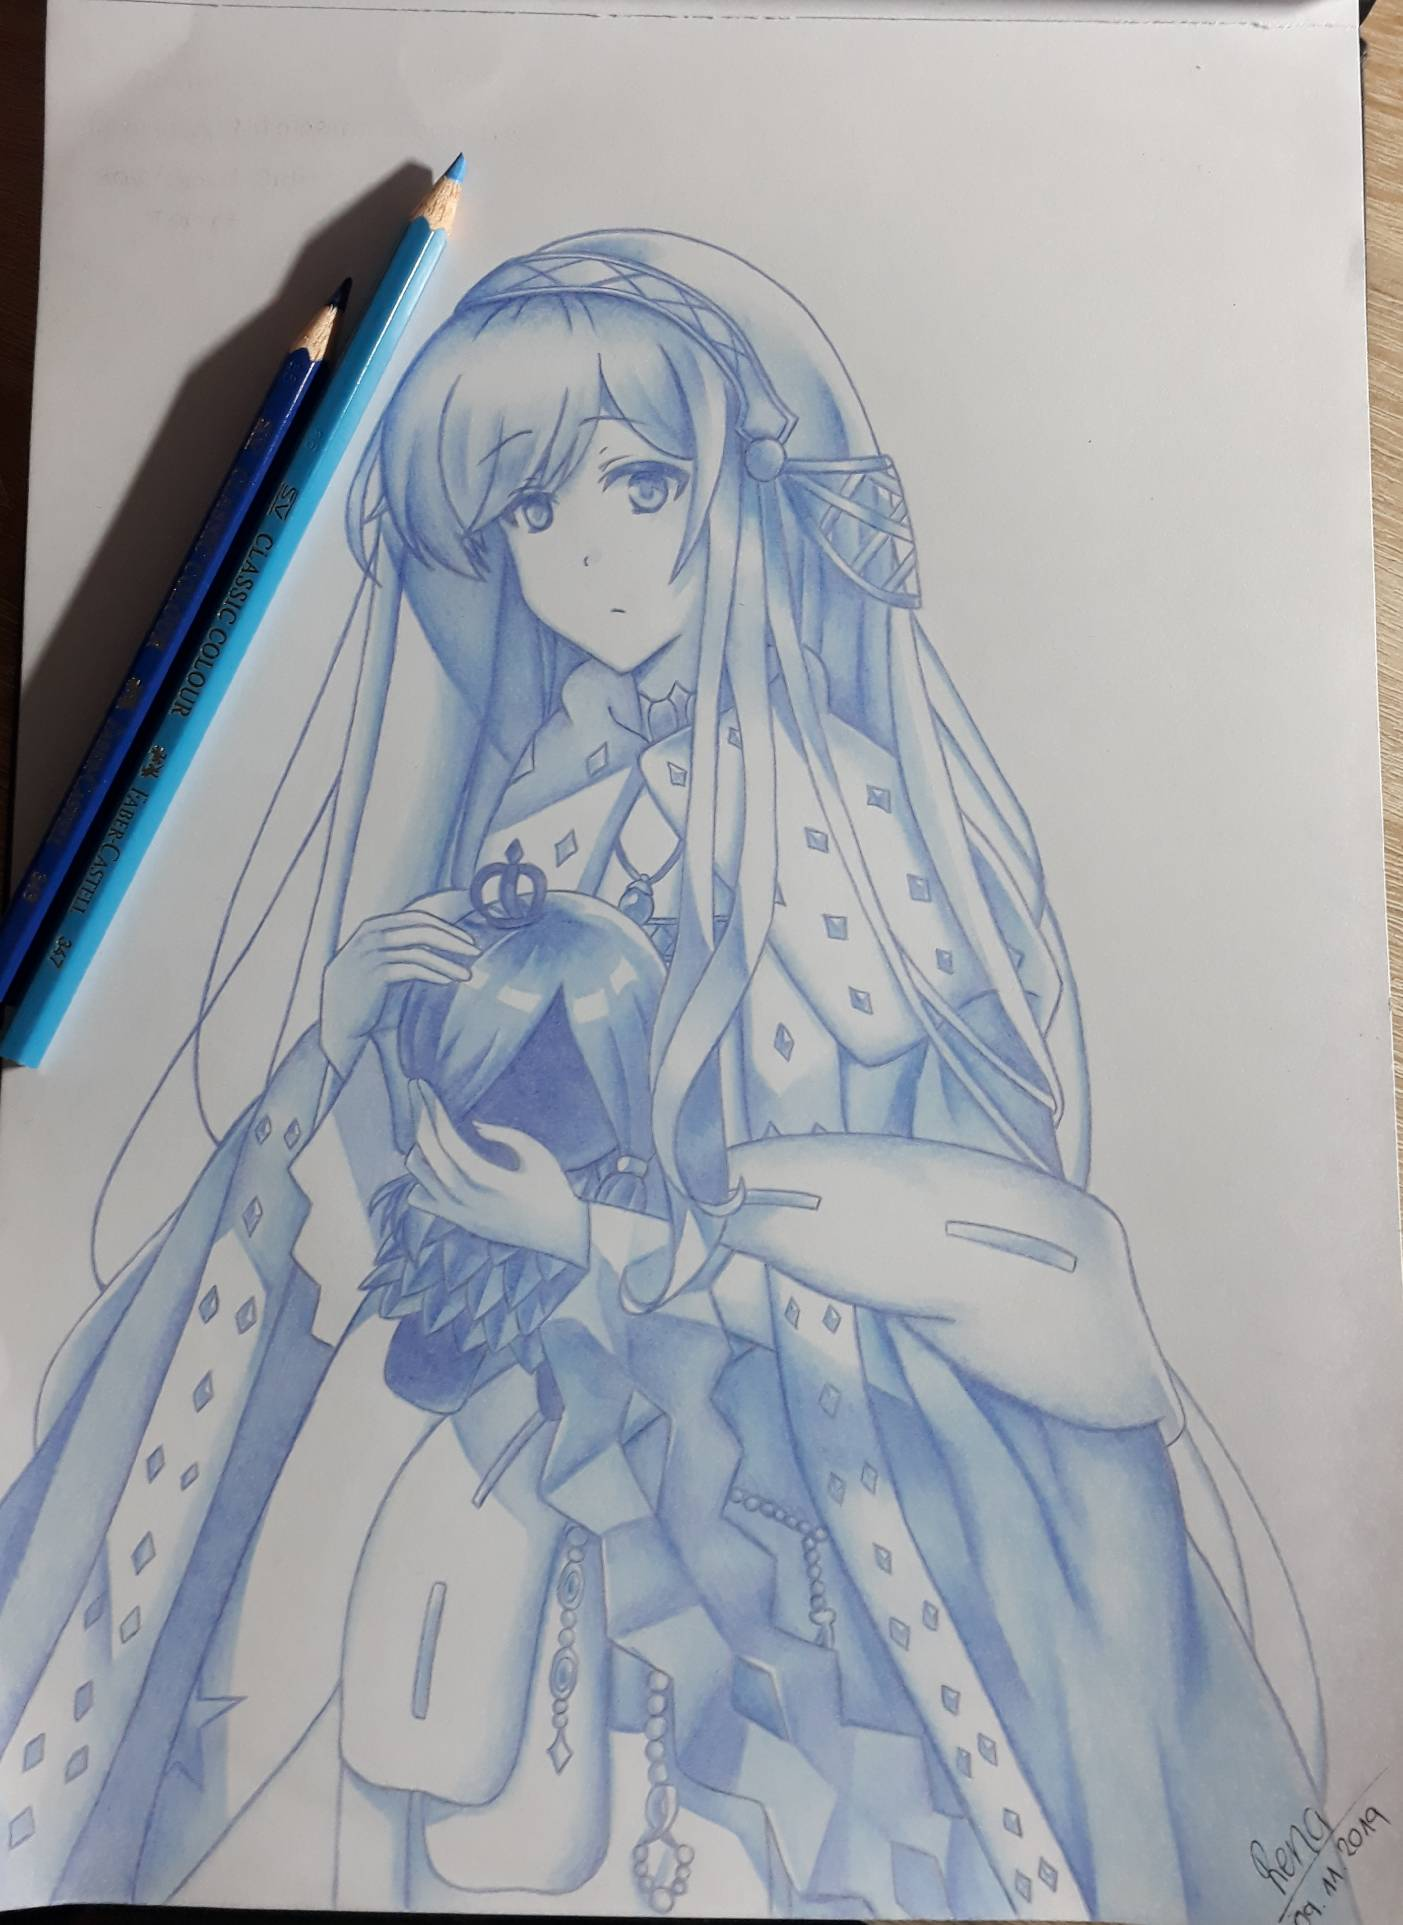 Caster Anastasia Fate Grand Order Fanart By Rena983 On Deviantart I'll make research about the copyright music next time if i upload something. caster anastasia fate grand order